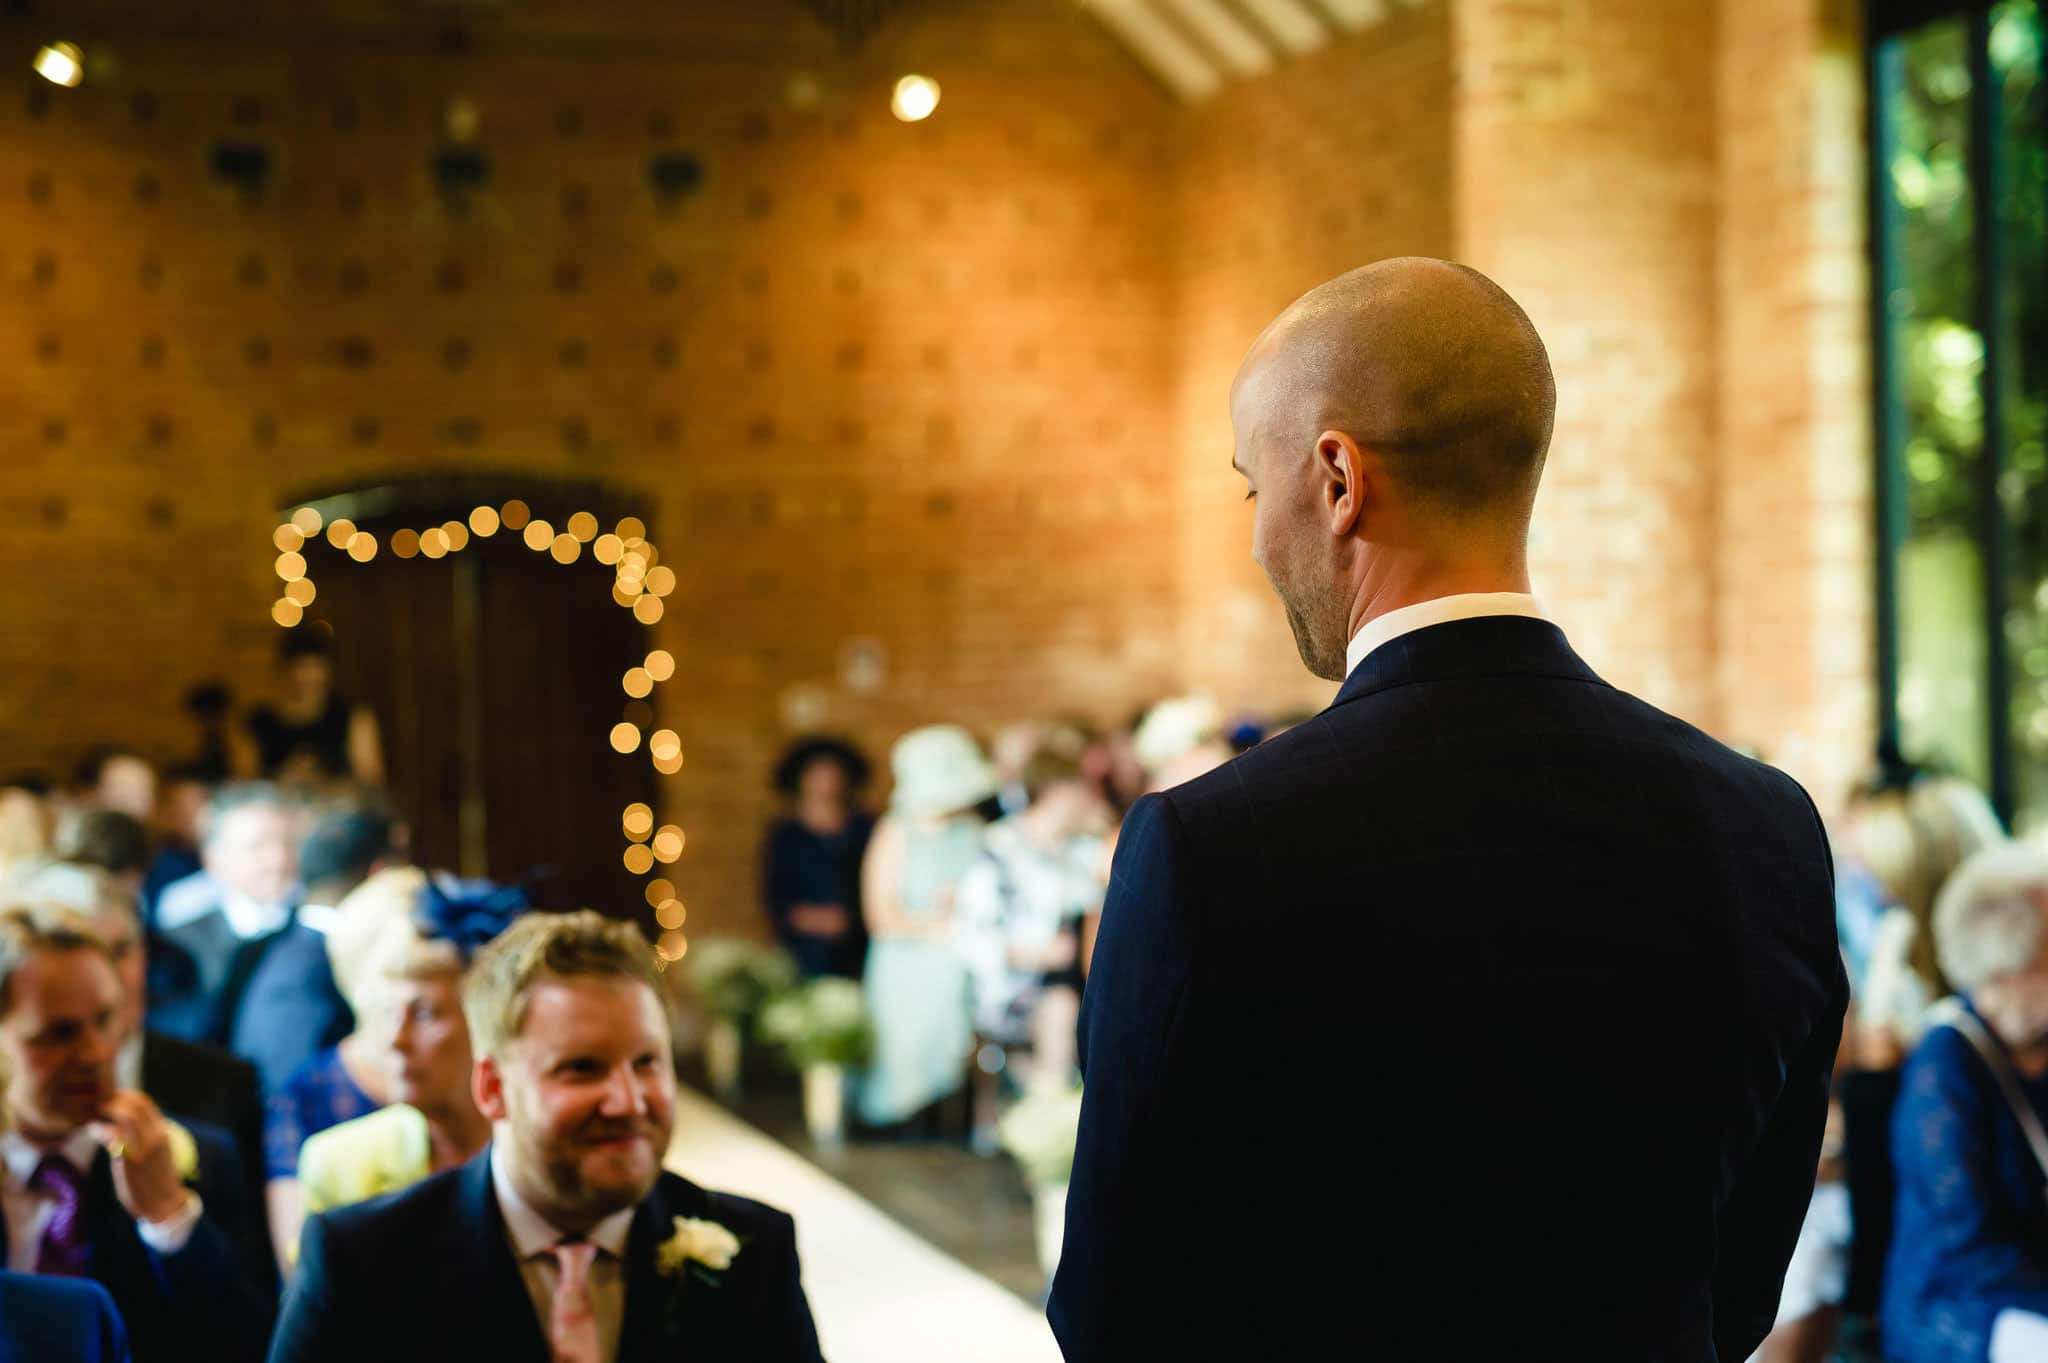 wedding at redhouse barn 67 - Wedding at Redhouse Barn in Stoke Prior, Worcestershire